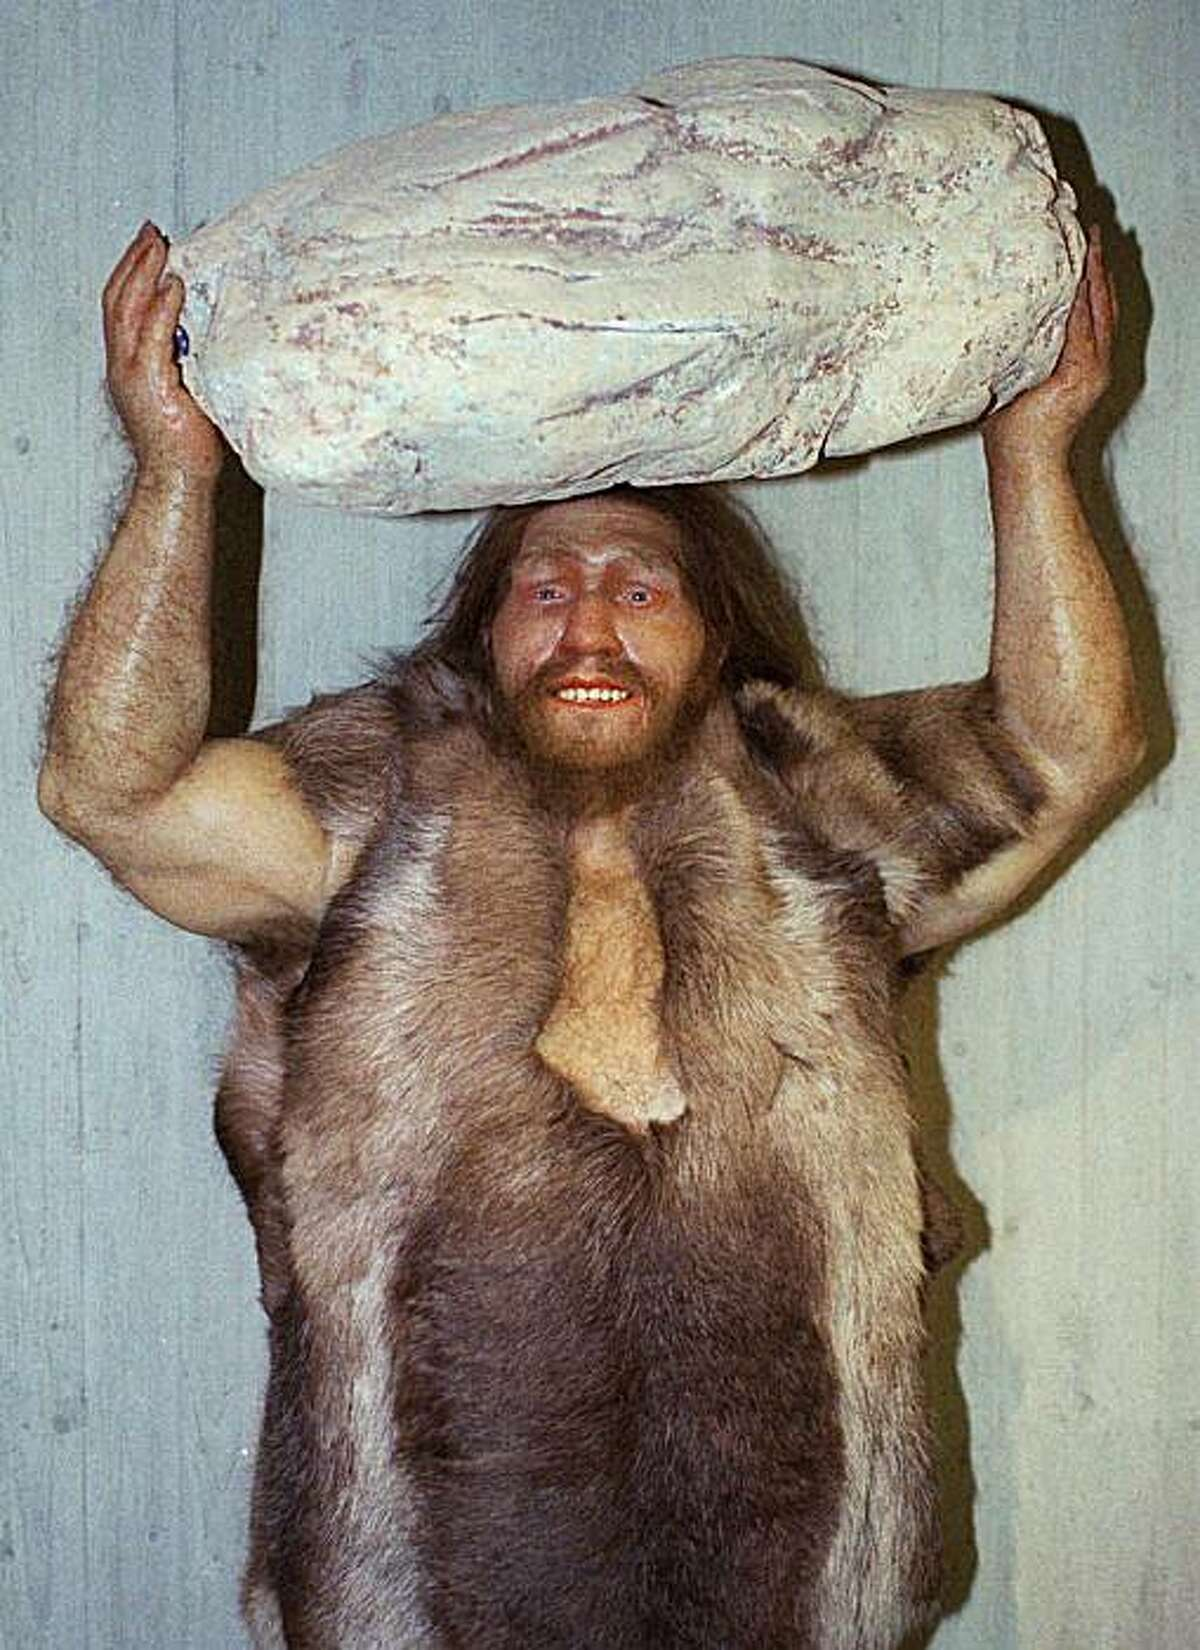 FILE - This Oct. 1996 file photo shows a replica of a Neanderthal man at the Neanderthal museum in Mettmann, western Germany. According to research reported in the Friday, May 6, 2010 edition of the journal Science, between 1 percent and 4 percent of genes in people from Europe and Asia trace back to Neanderthals. (AP Photo/Heinz Ducklau, file) HOLD FOR RELEASE AT 2 P.M. EDT. THIS PHOTO MAY NOT BE PUBLISHED, BROADCAST OR POSTED ONLINE BEFORE 2 P.M. EDT